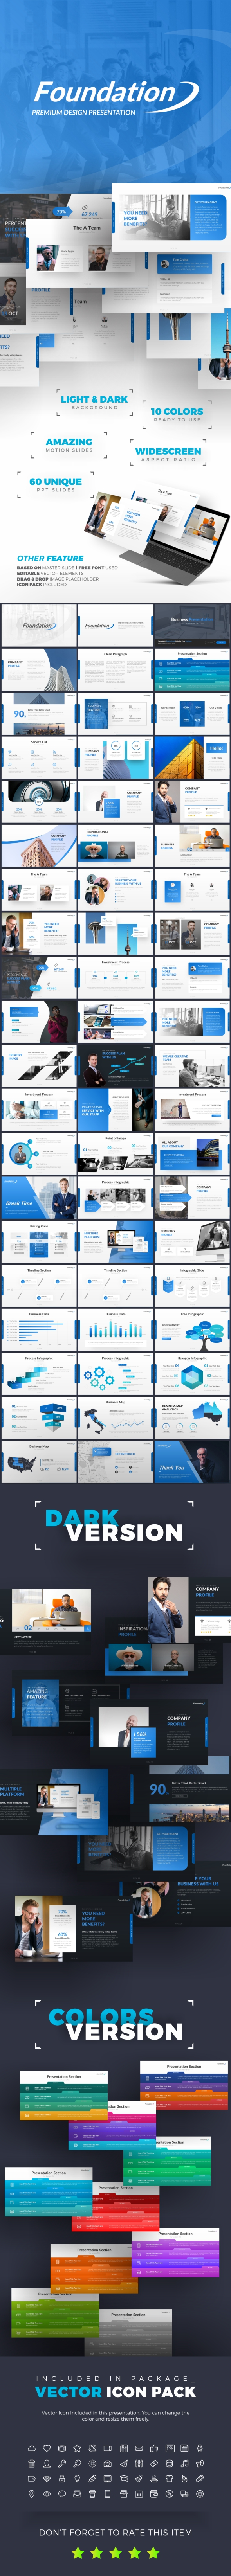 Foundation Premium Presentation Template - PowerPoint Templates Presentation Templates